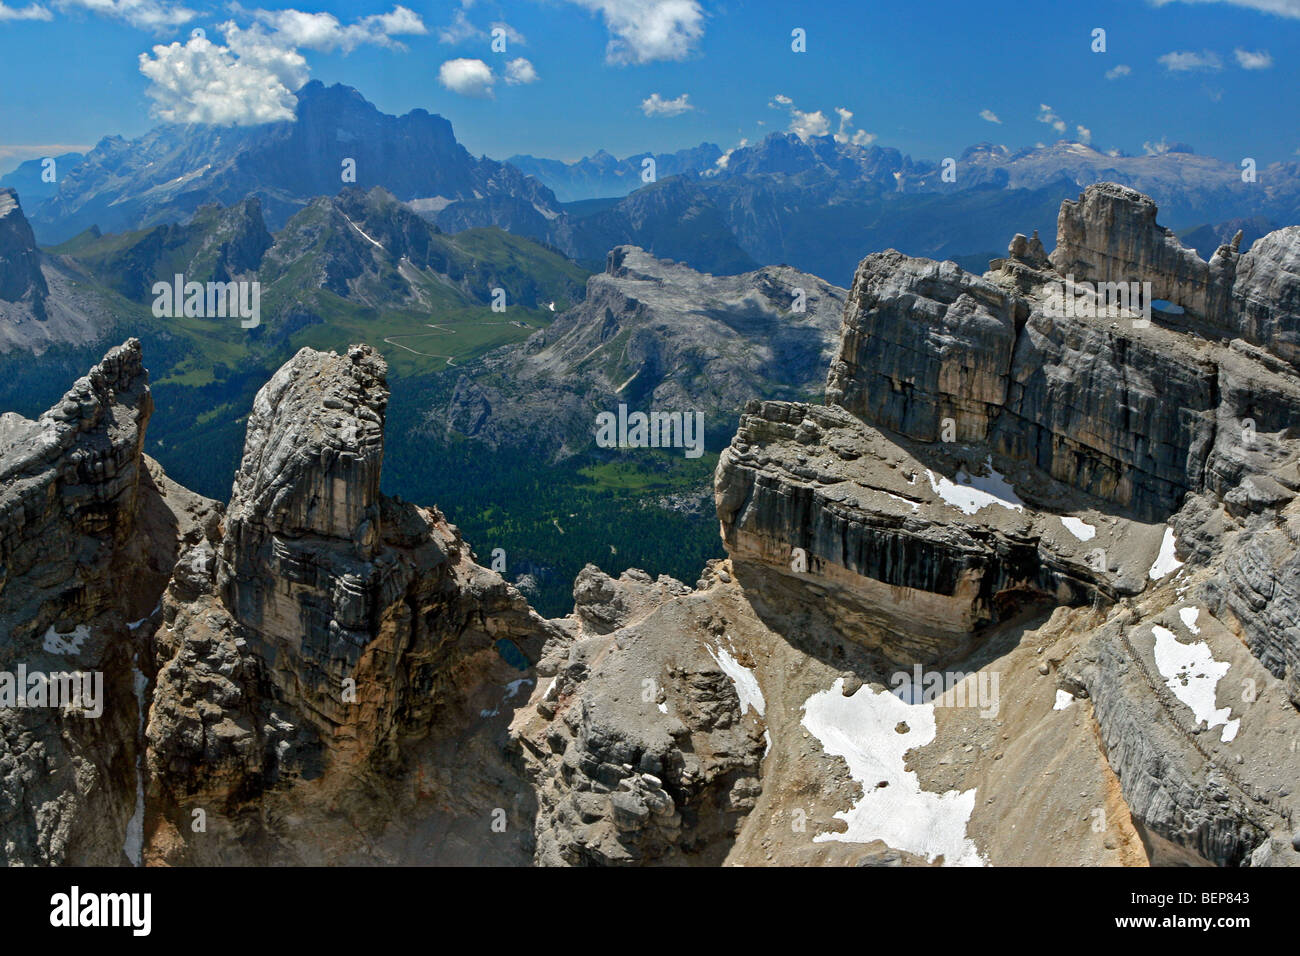 Monte pelmo dolomites italy view from tofana di mezzo for Best view of dolomites